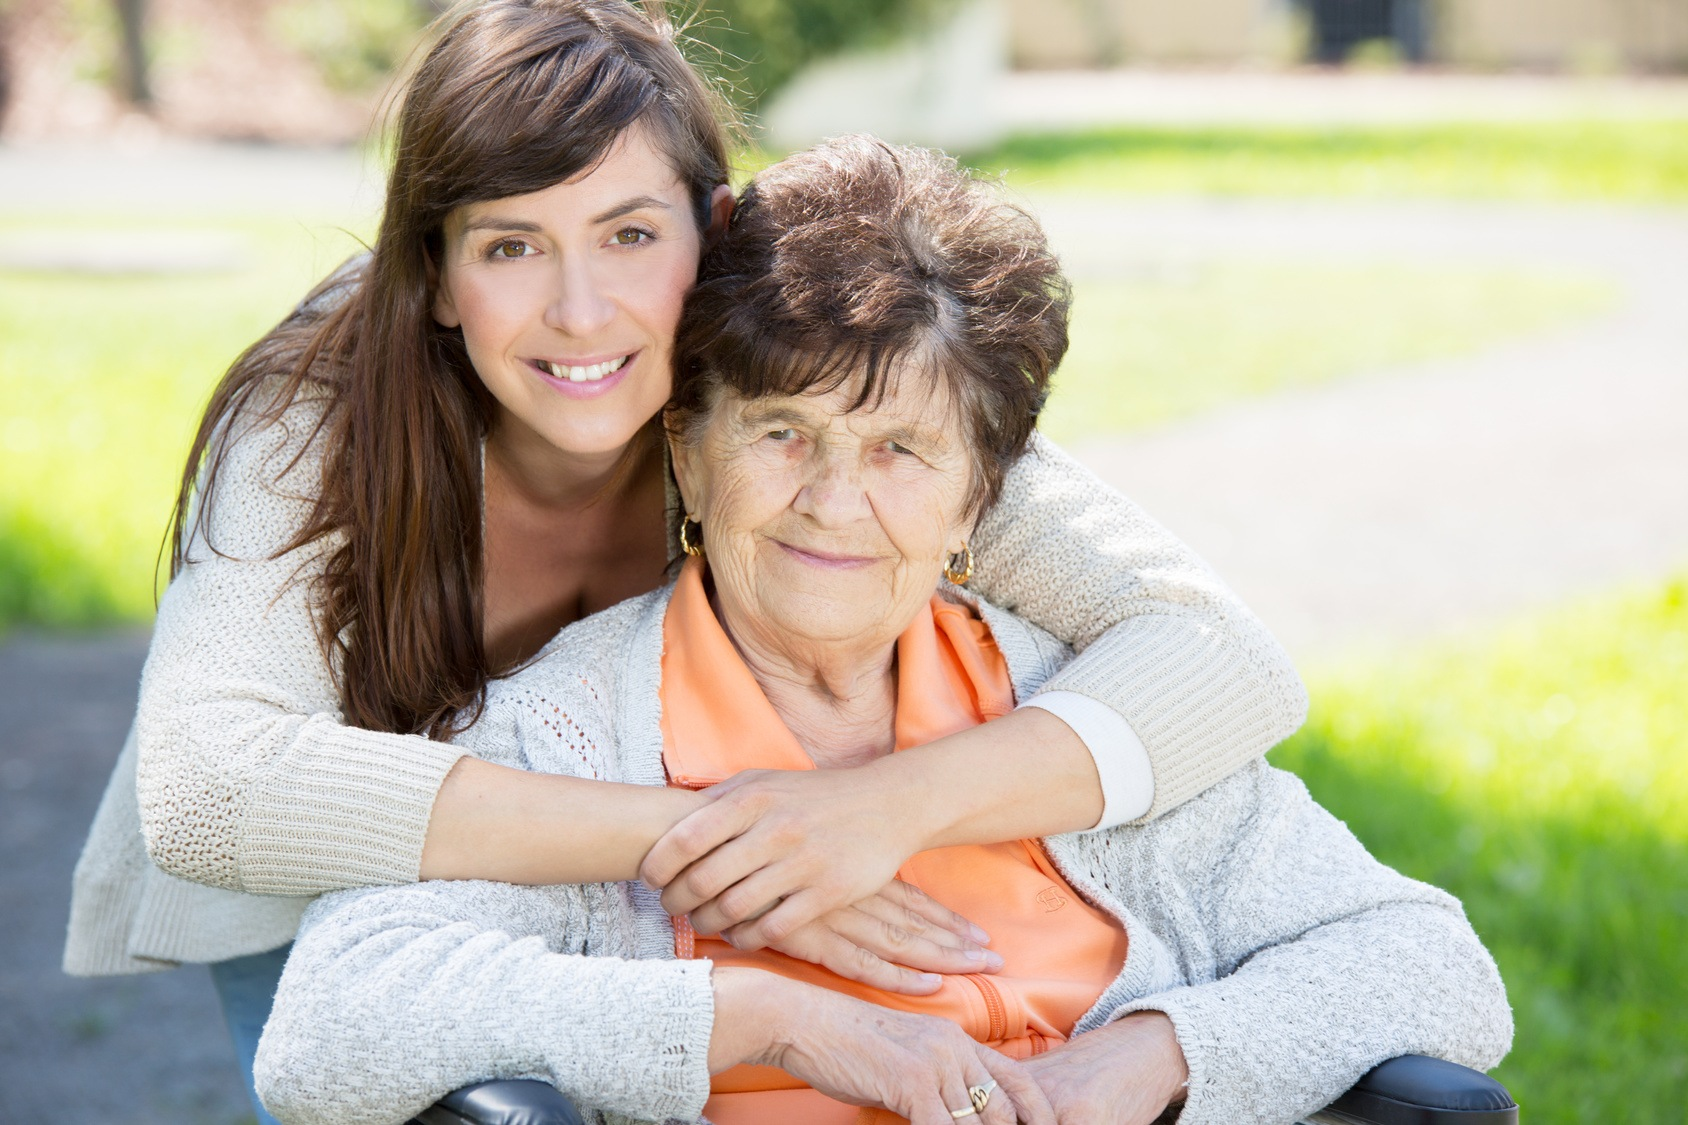 The Heroes of Your Community: Those Who Care for the Elderly